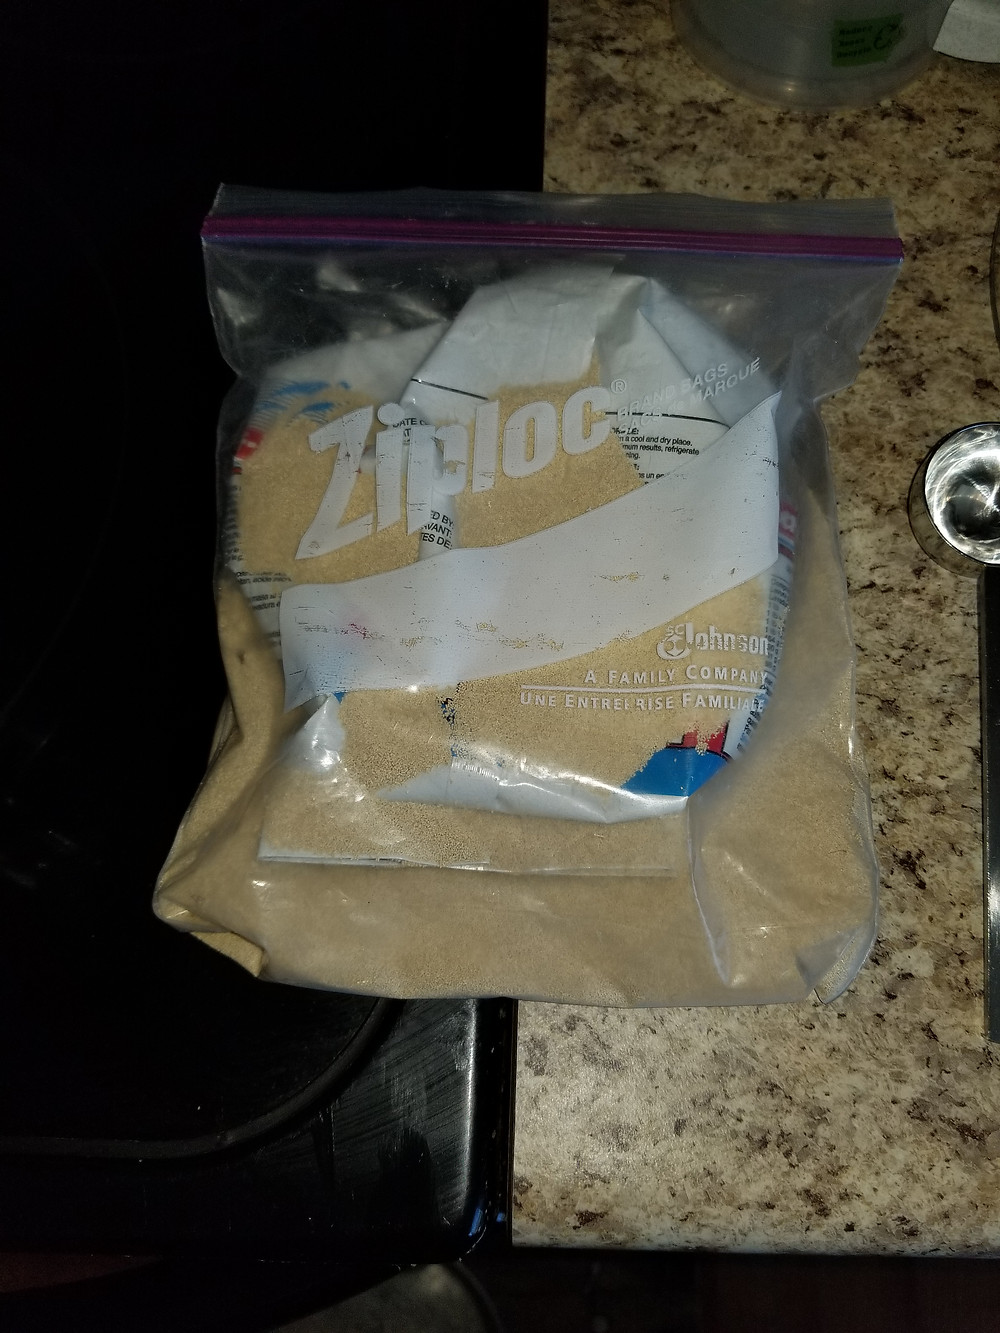 Ziploc bag of yeast straddling the stove and counter top